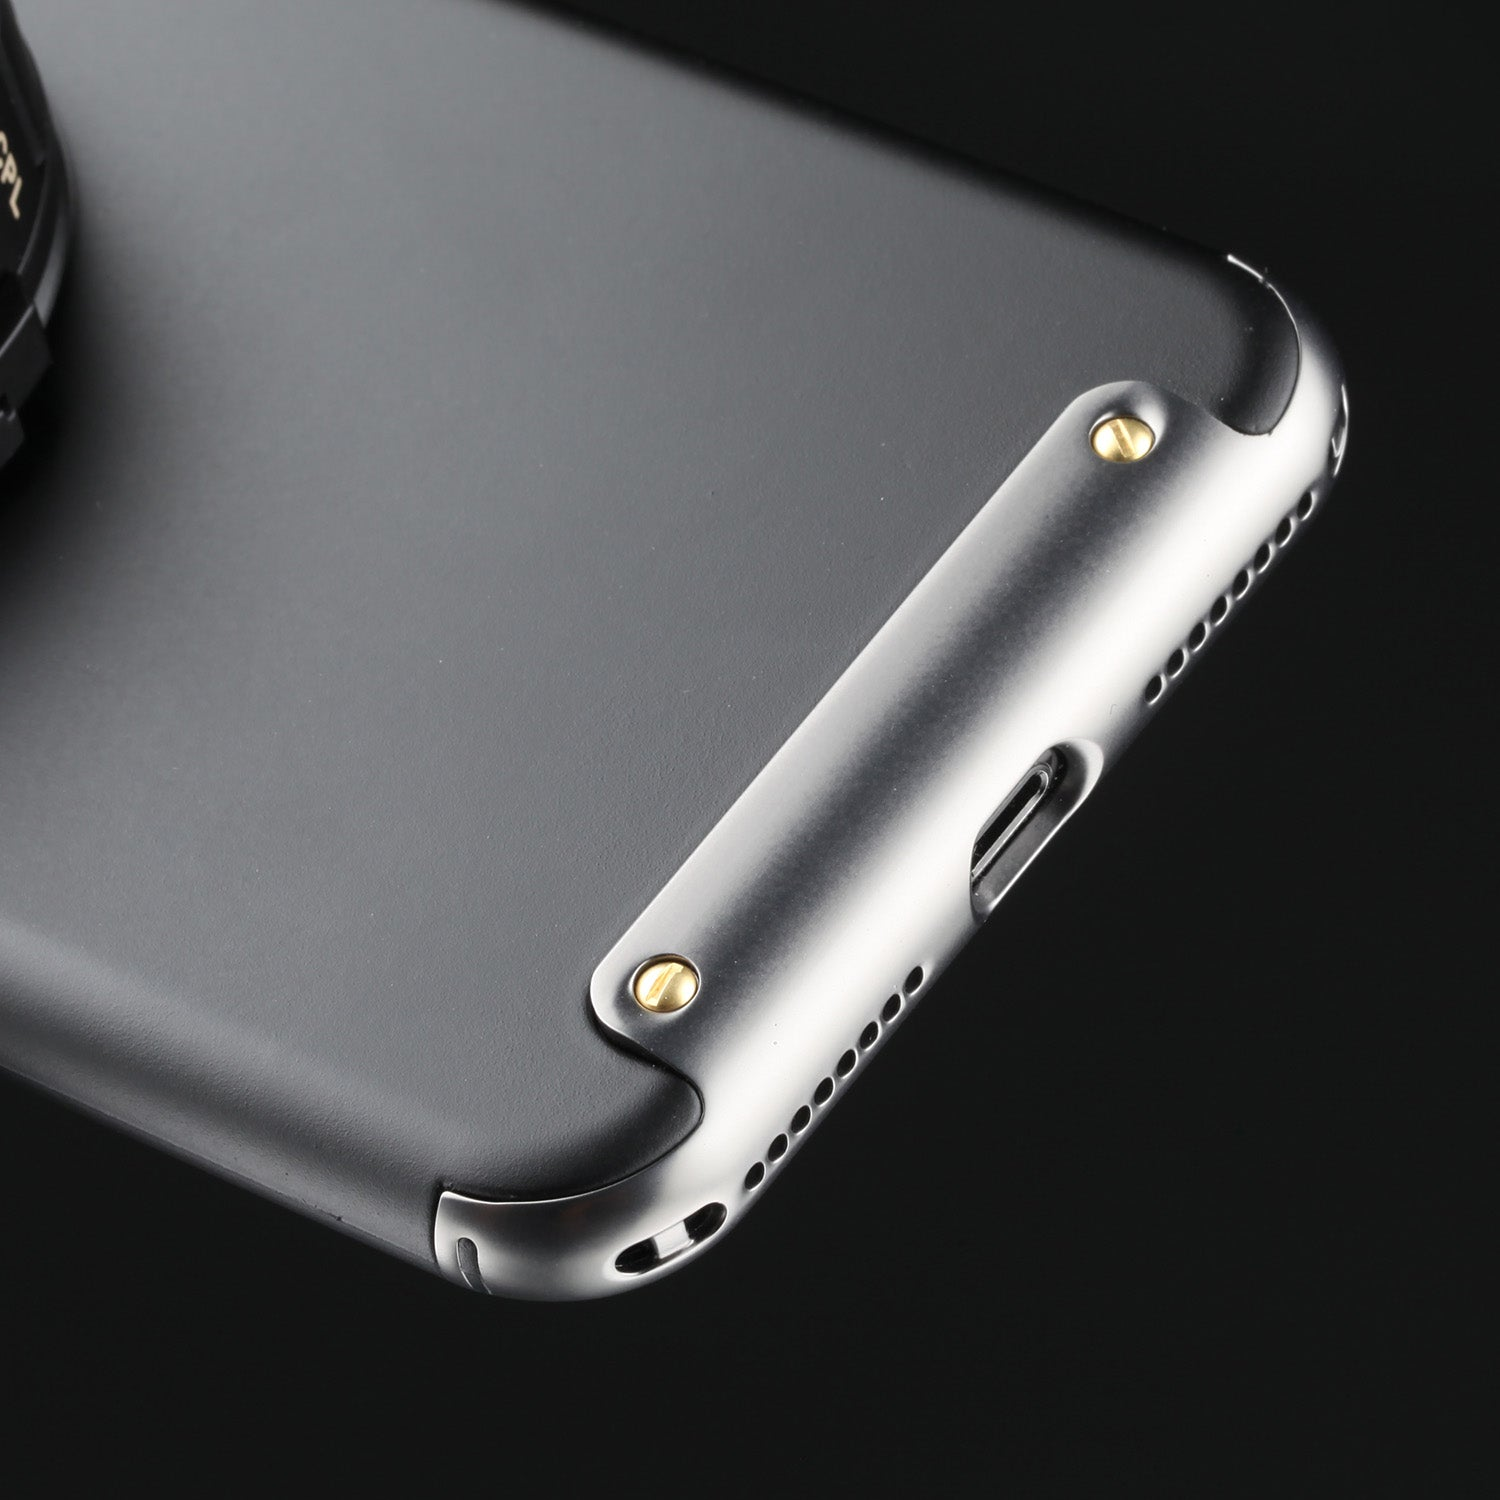 lowest price e73ee a2b81 Revolver Lens Camera Kit for iPhone 8 Plus / 7 Plus- Gunmetal Edition